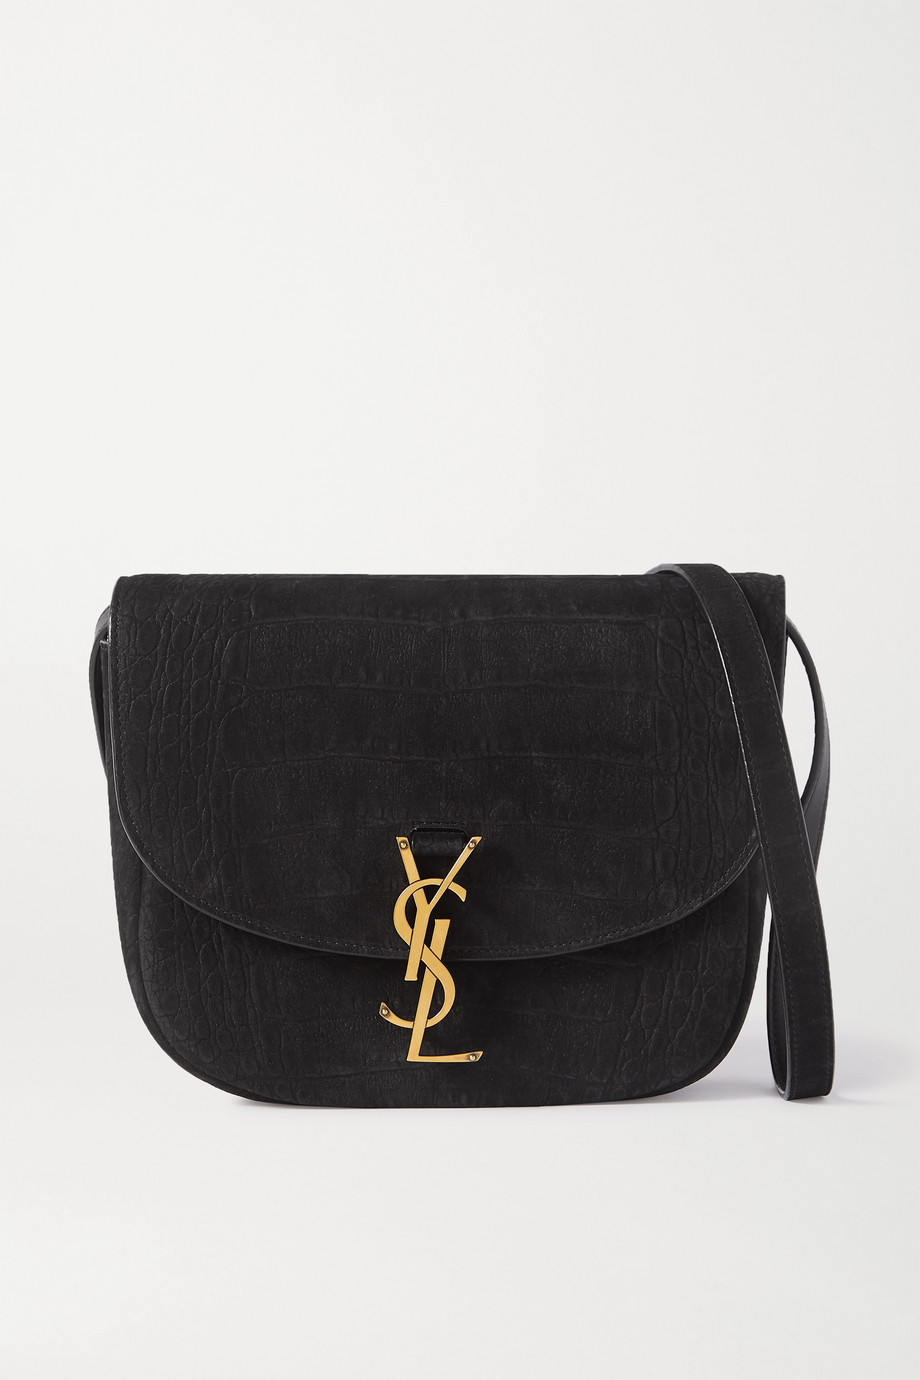 SAINT LAURENT Kaia medium leather-trimmed croc-effect suede shoulder bag